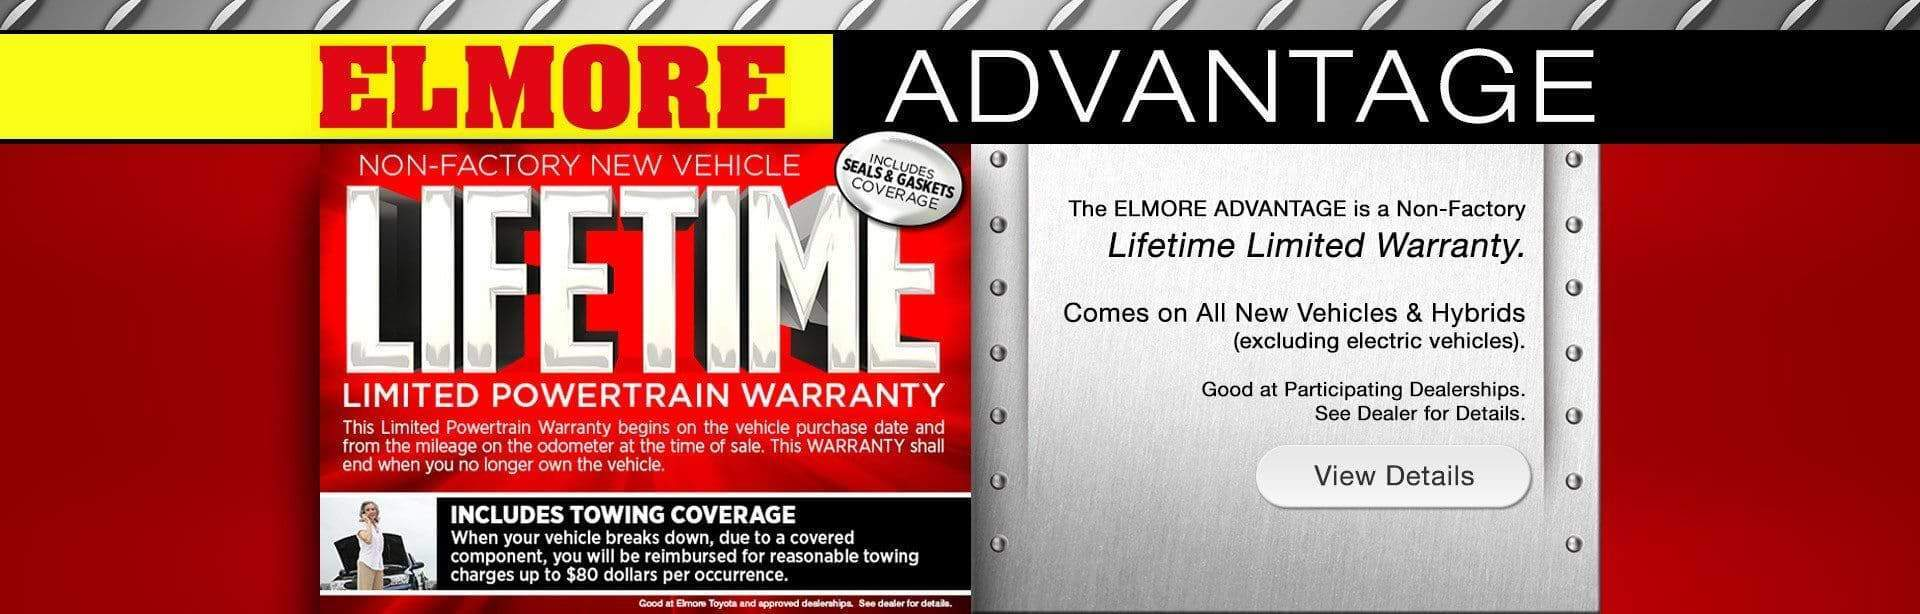 Lifetime Warranty at Elmore Toyota